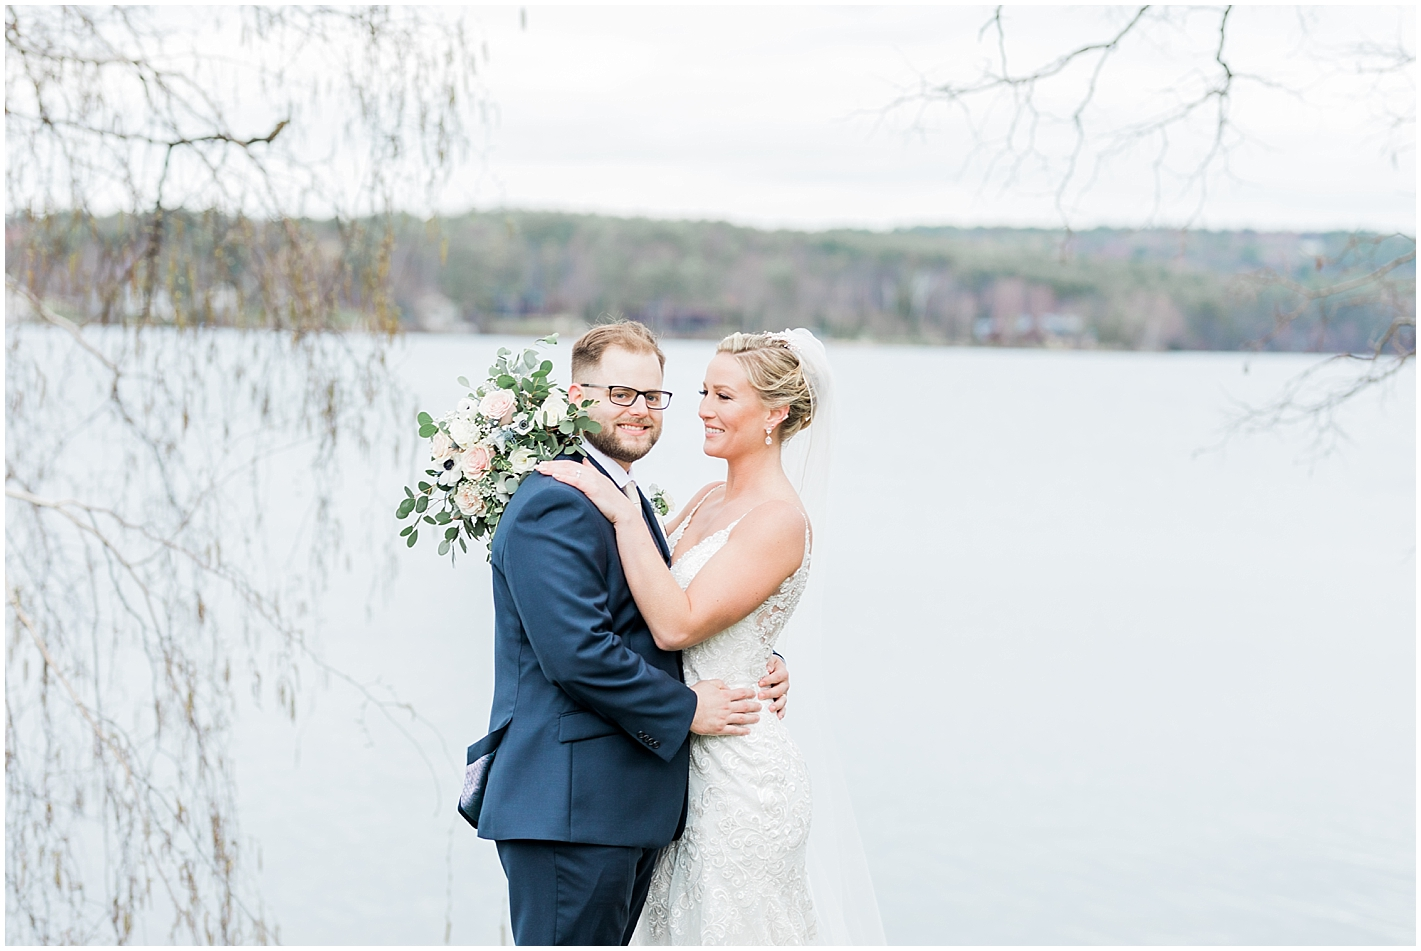 Spring Wedding at Lake Winnipesaukee, New Hampshire Photos by Alyssa Parker Photography